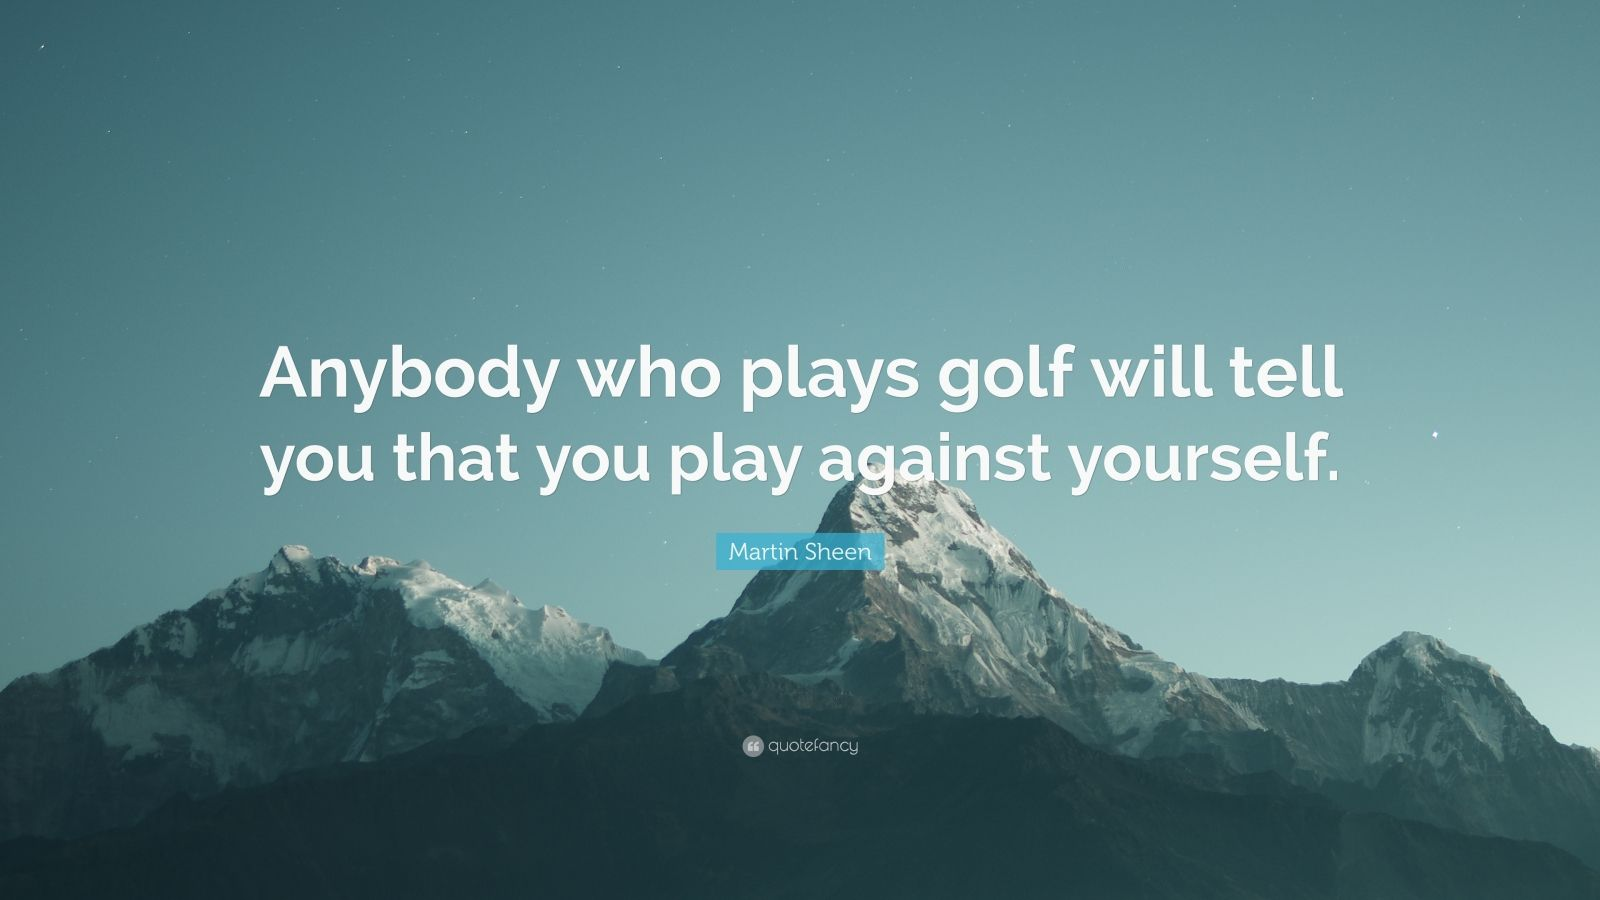 """Martin Sheen Quote: """"Anybody who plays golf will tell you that you play against yourself."""""""